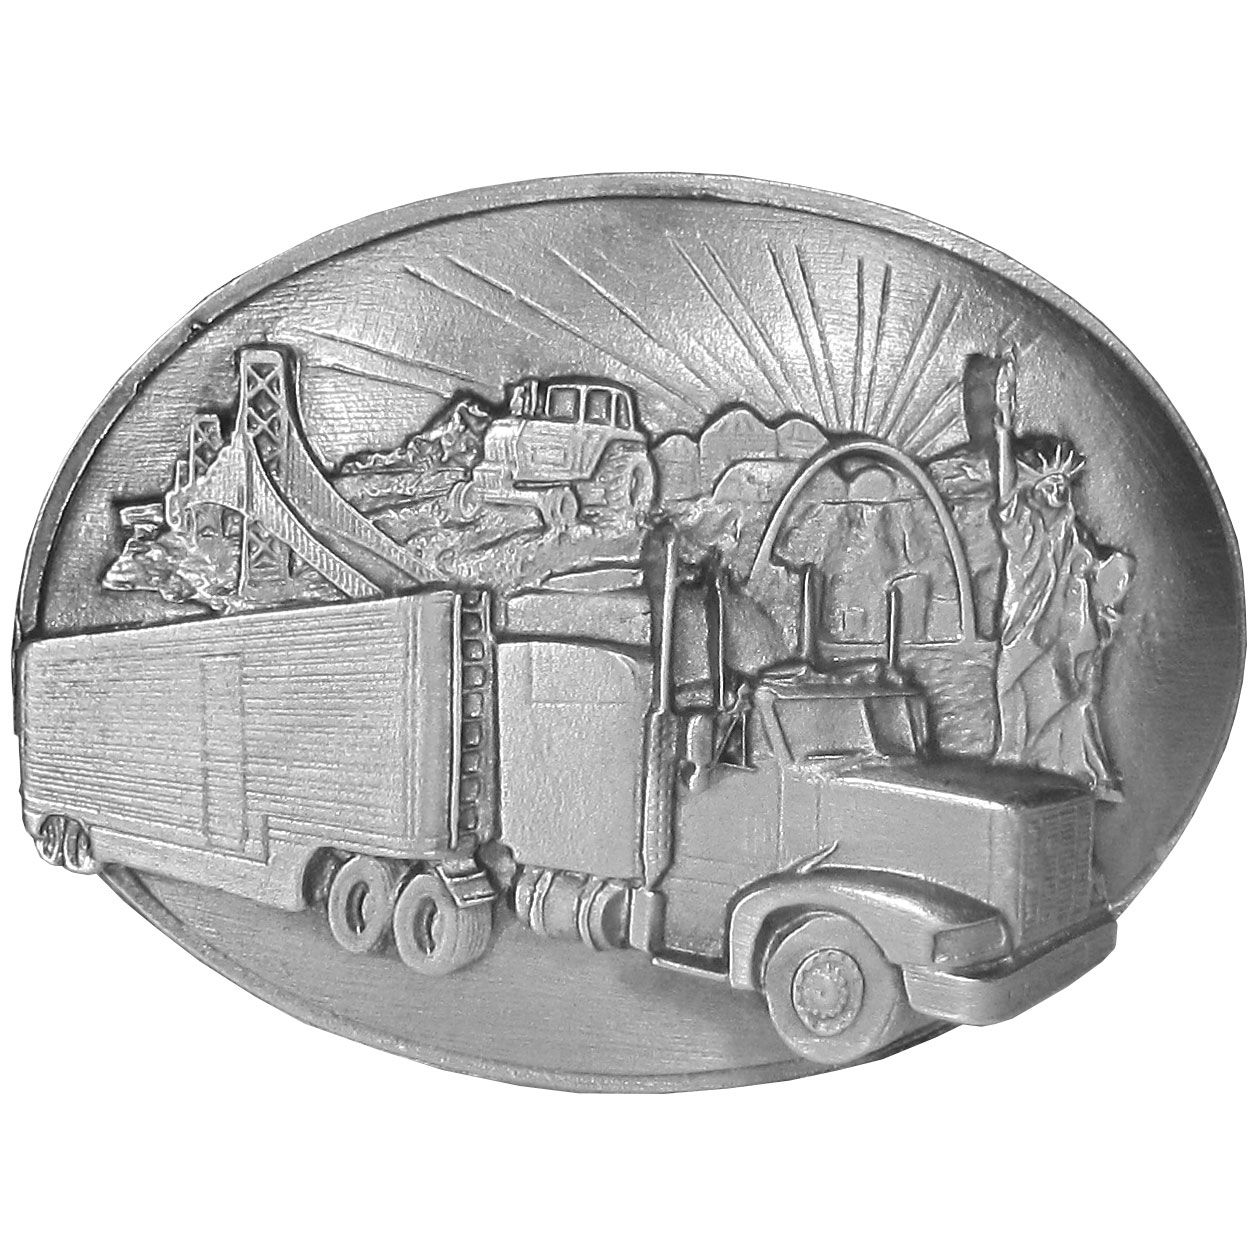 """Long Haul Trucker Antiqued Belt Buckle - This belt buckle is for the Long Haul Trucker! There is a long haul semi truck surrounded by scenes of America including the Statue of Liberty and the Golden Gate Bridge. This exquisitely carved buckle is made of fully cast metal with a standard bale that fits up to 2"""" belts."""